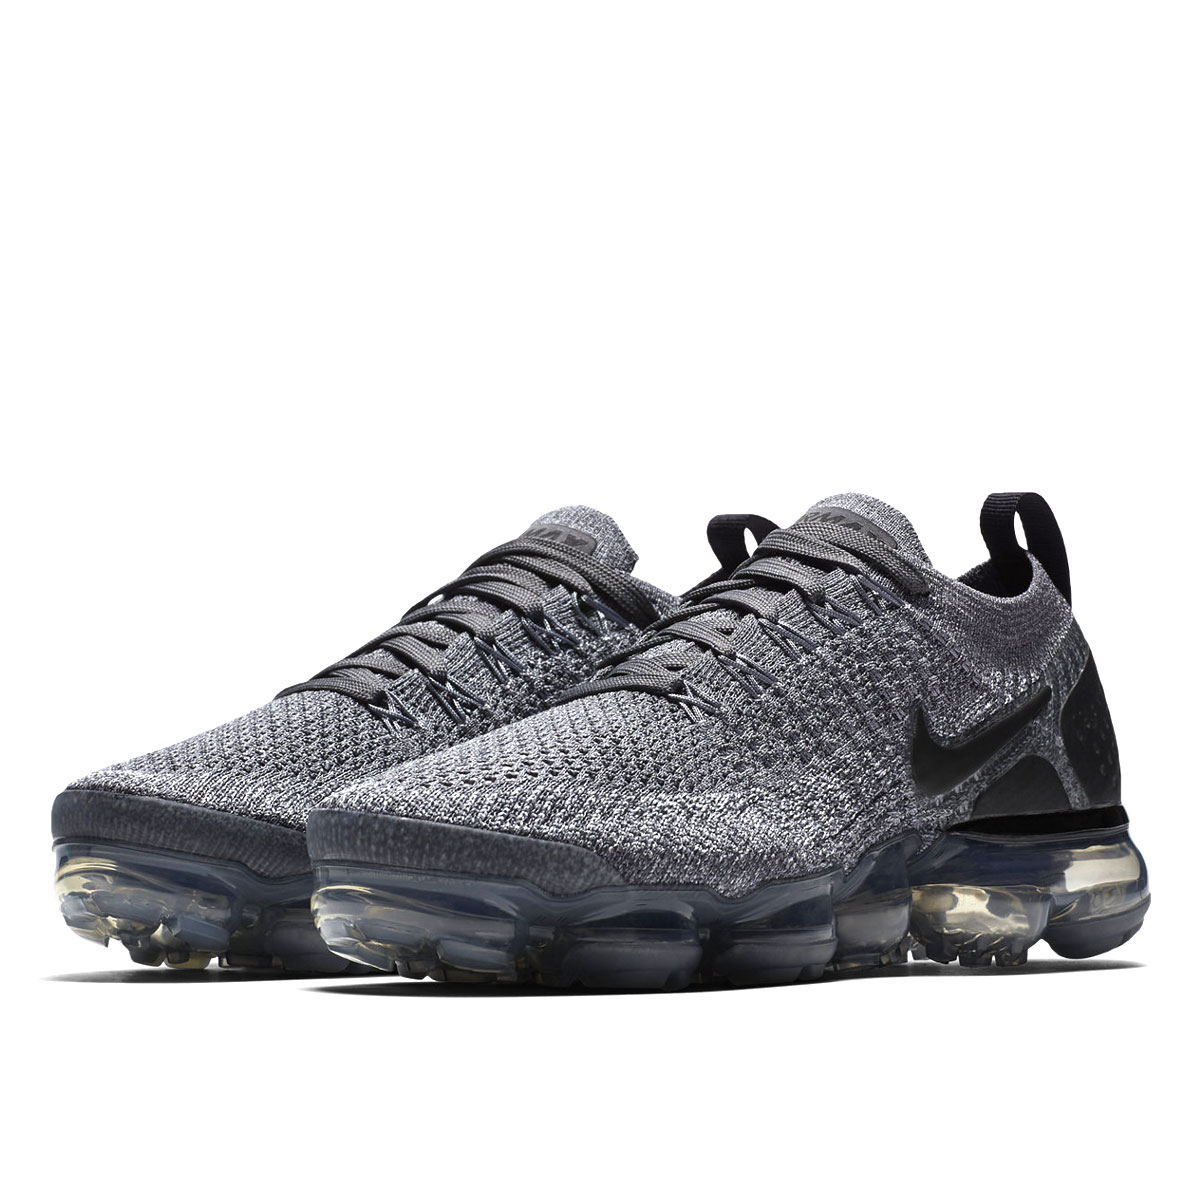 8a625c2616f6fd NIKE WMNS AIR VAPORMAX FLYKNIT 2 Nike women vapor max fried food knit DARK  GREY WOLF GREY 942